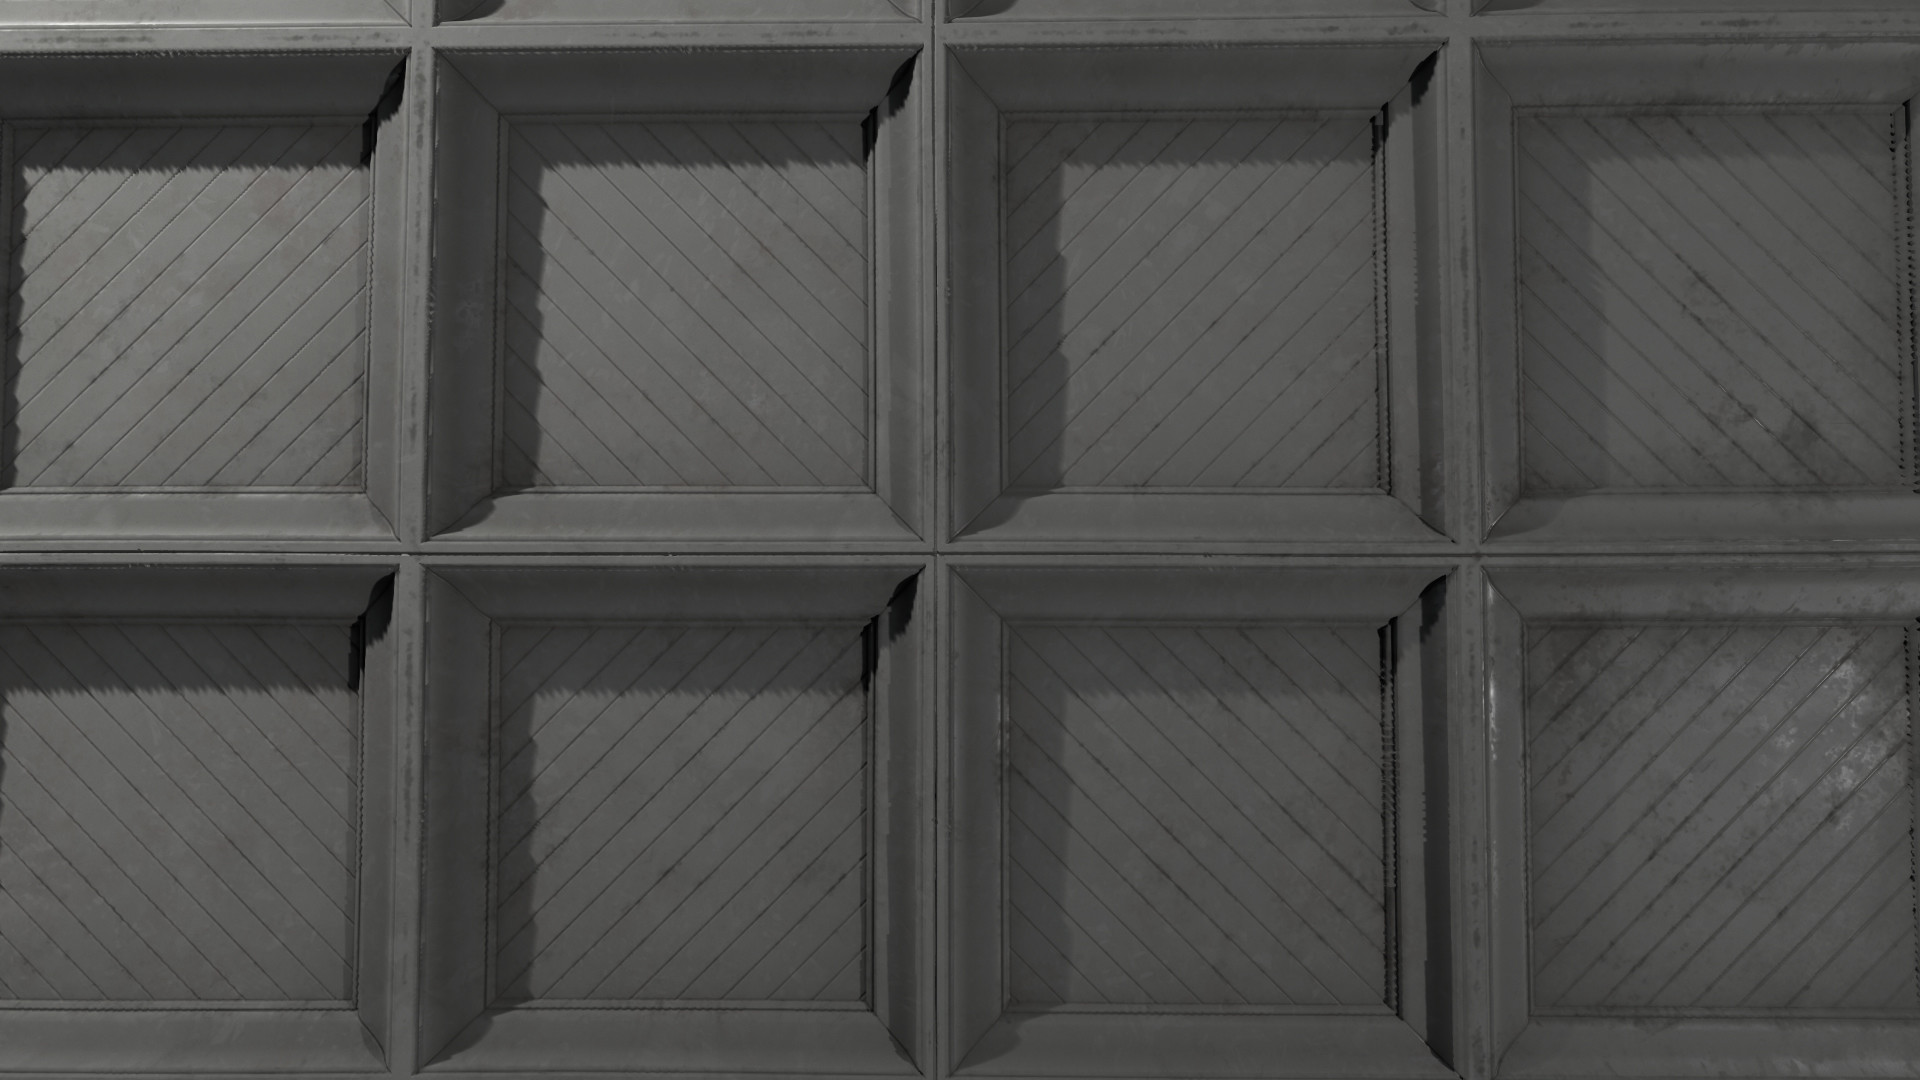 Kurt kupser textures 0002s 0001 coffered ceiling 2